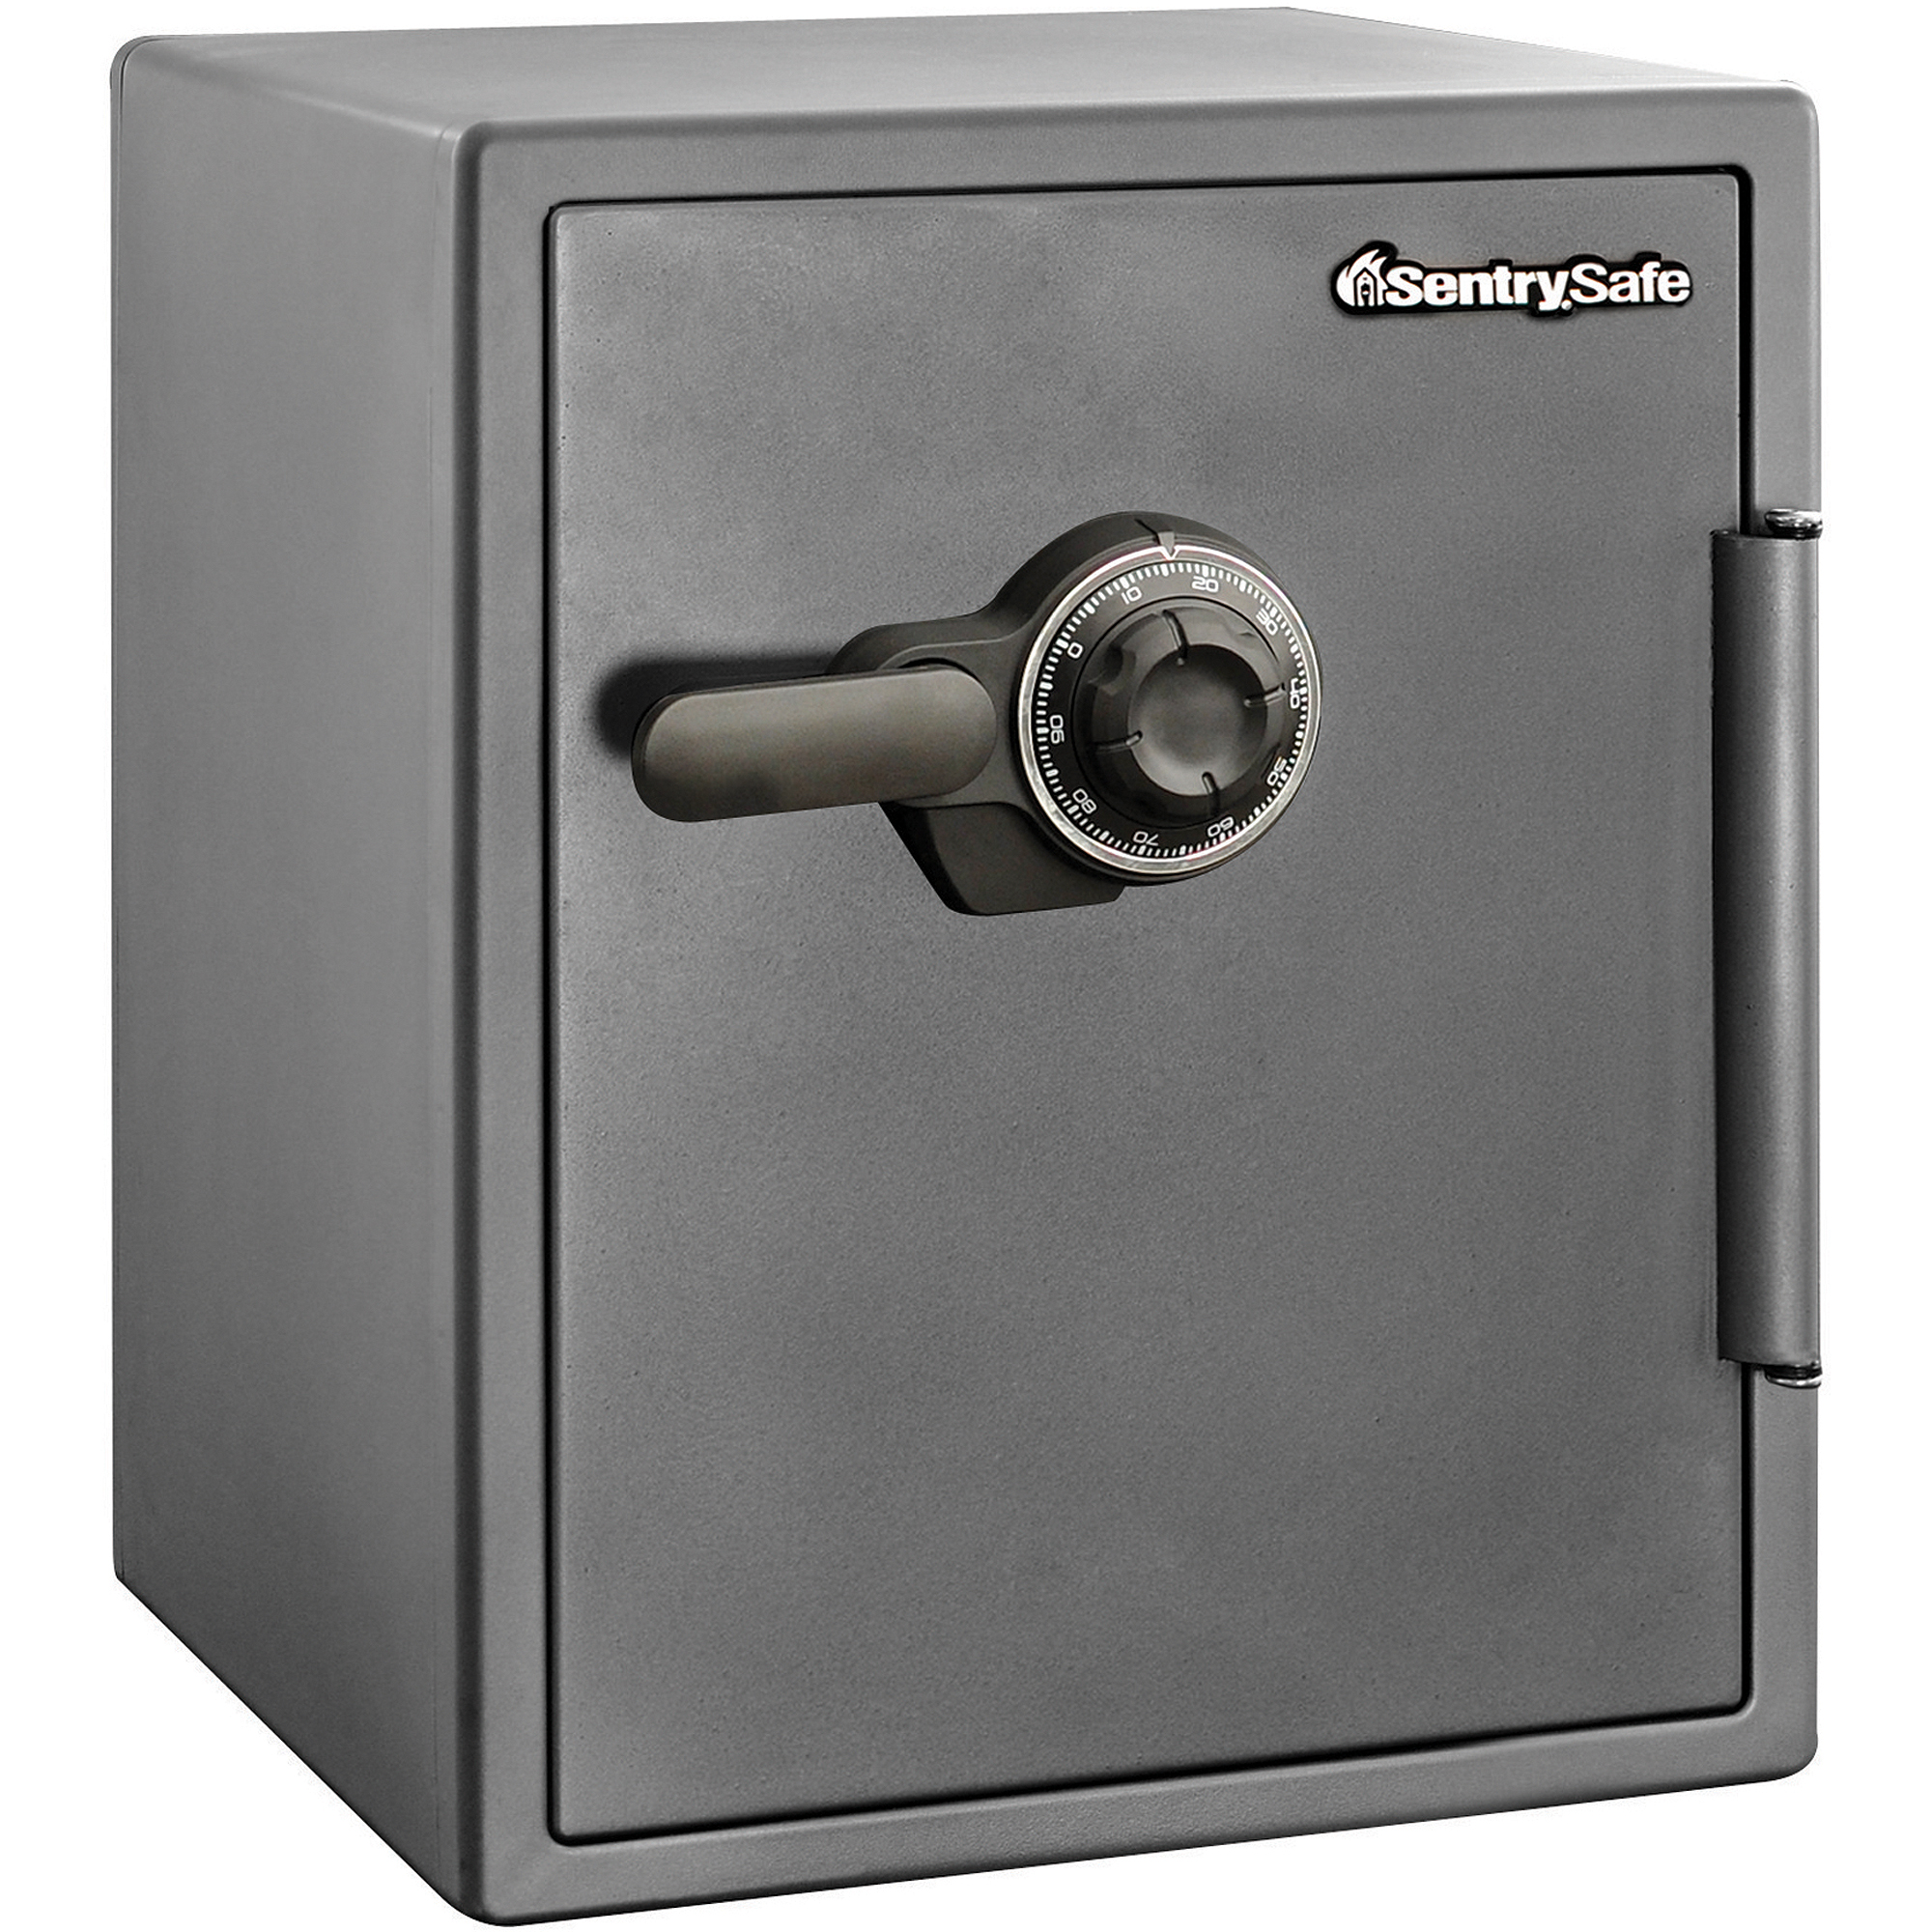 SentrySafe 2 cu. ft. XX-Large Combination Safe, SF205CV